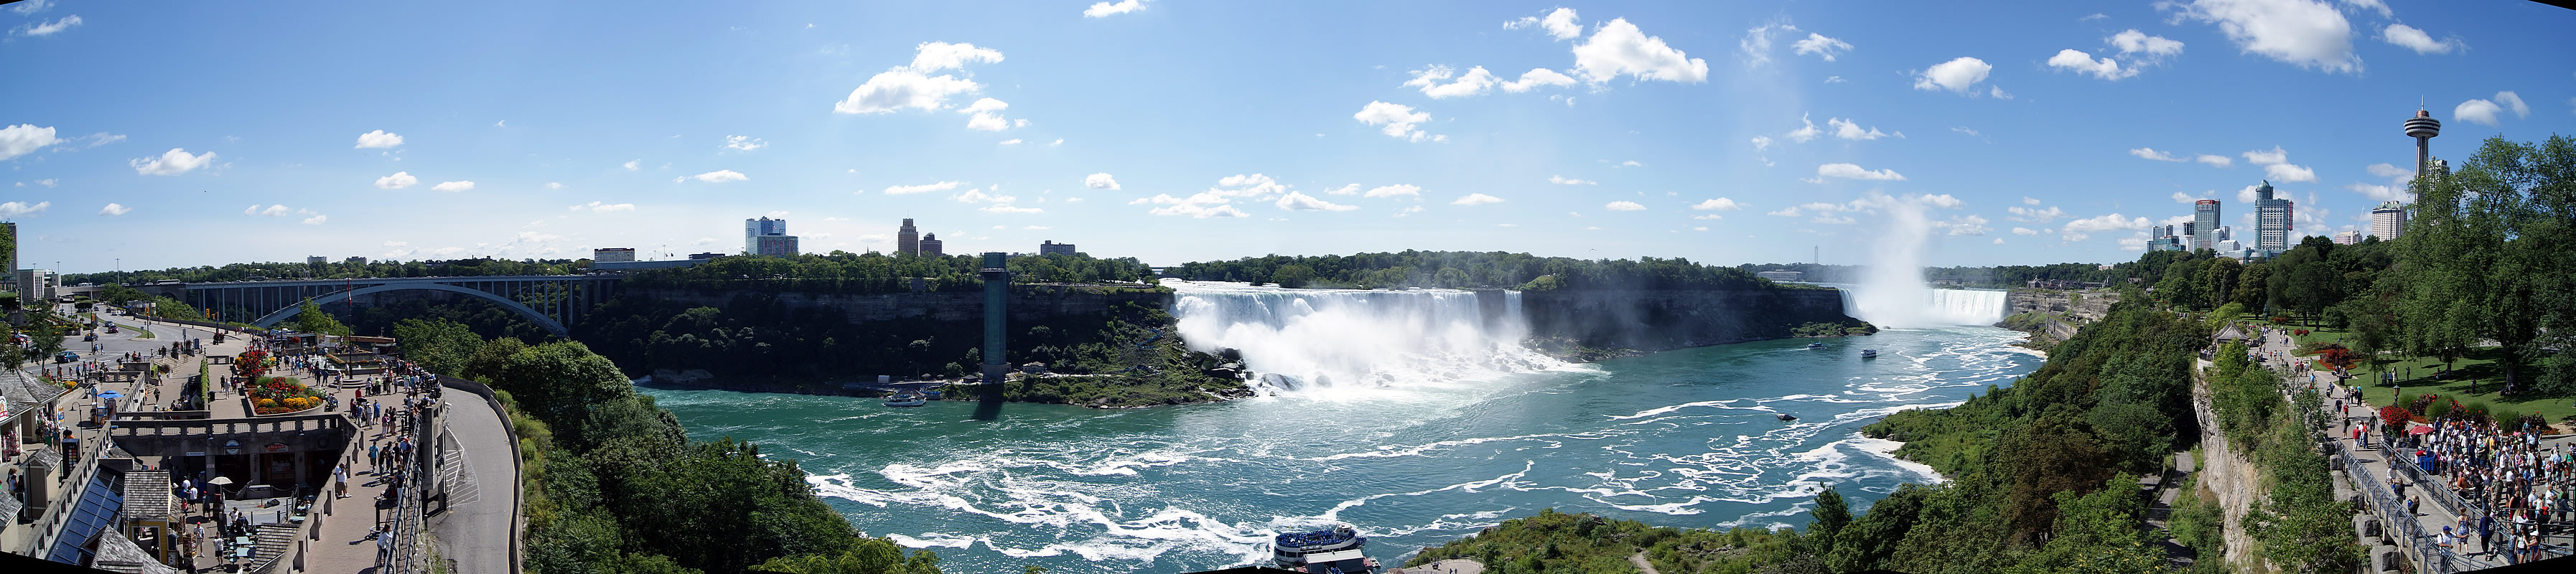 Wallpaper Fall Images Niagara Falls Summer Panorama Photo